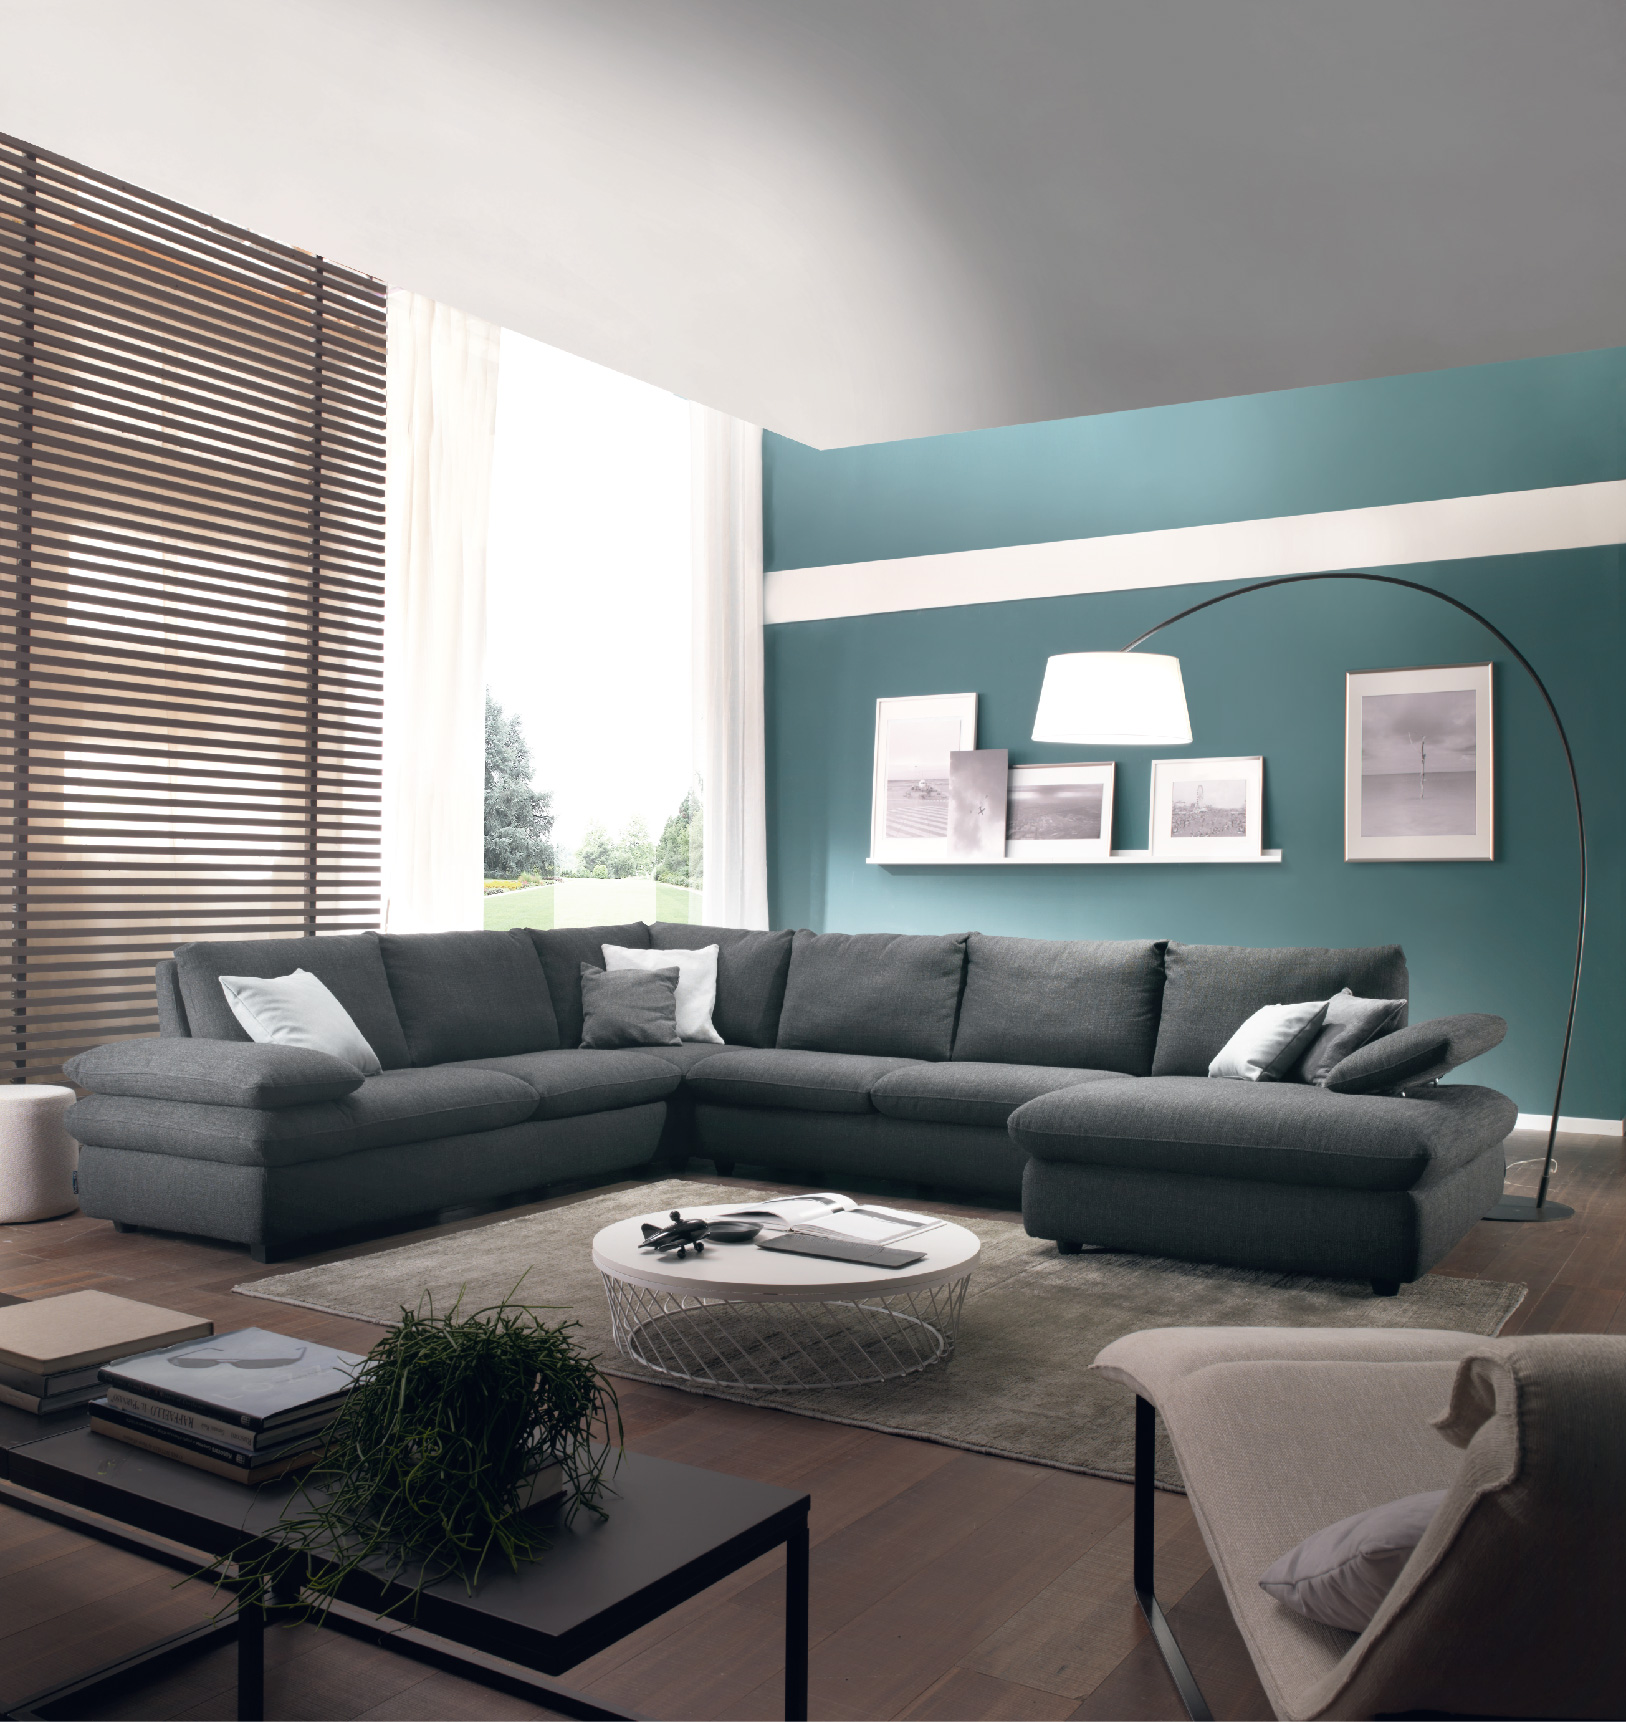 Soggiorni Chateau D Ax last remaining pieces – up to 50% off - living